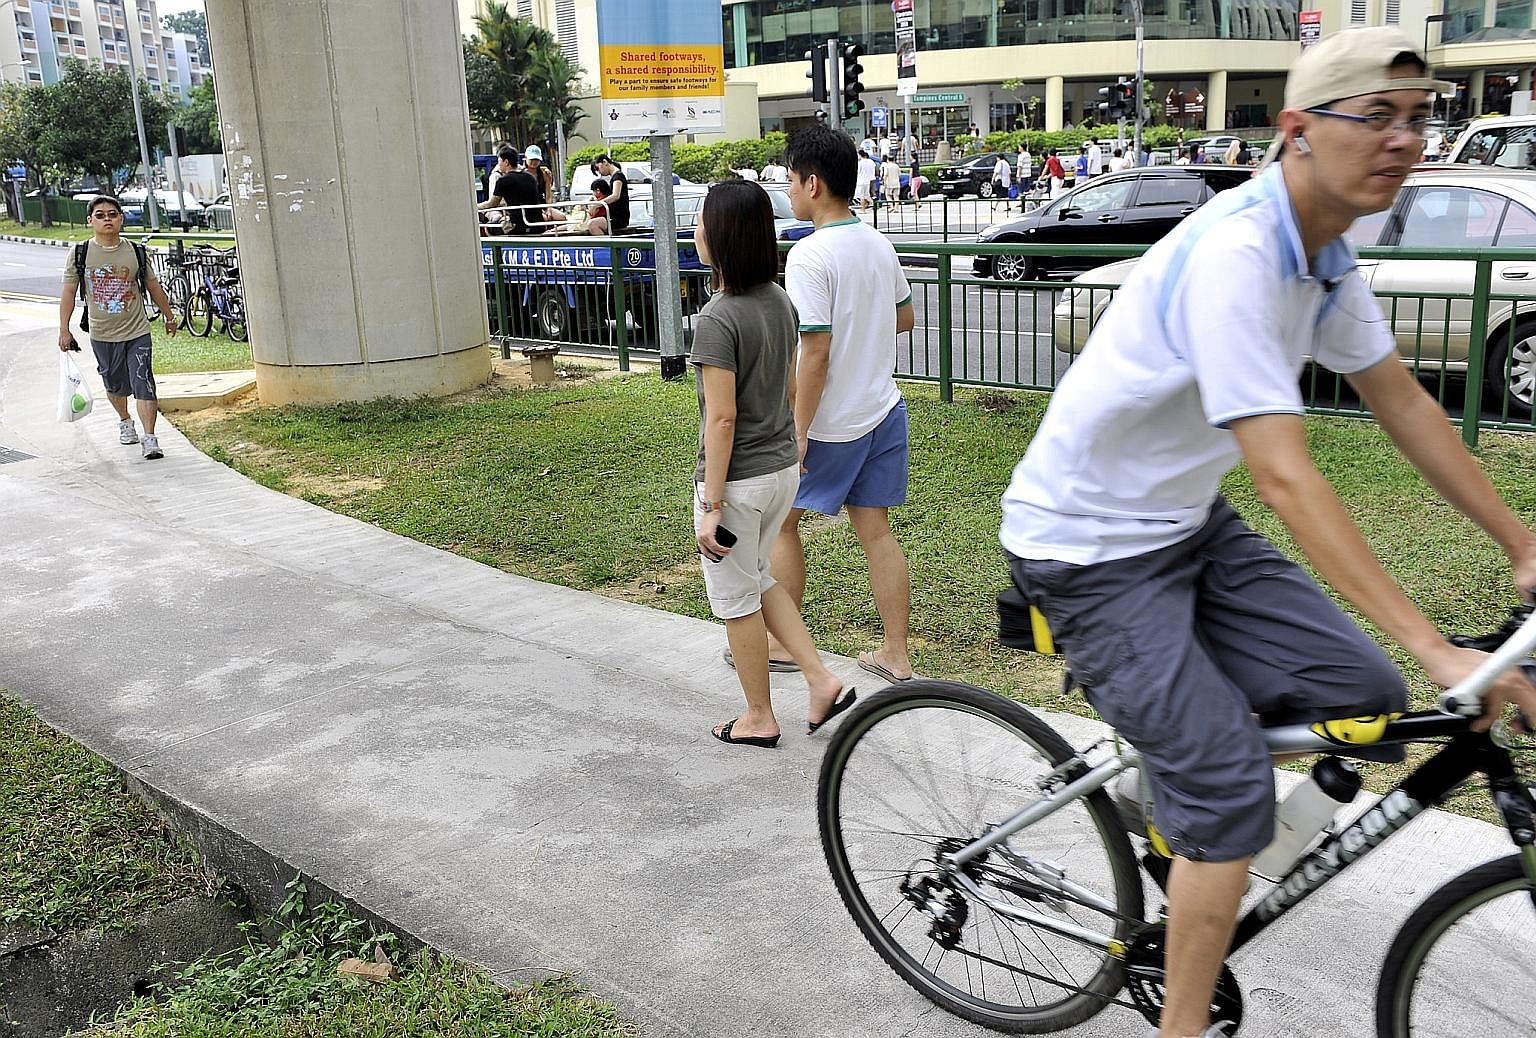 Observers say one difficulty in enforcing the speed limit on cyclists and PMD users is that they may not all have speedometers on their machines.